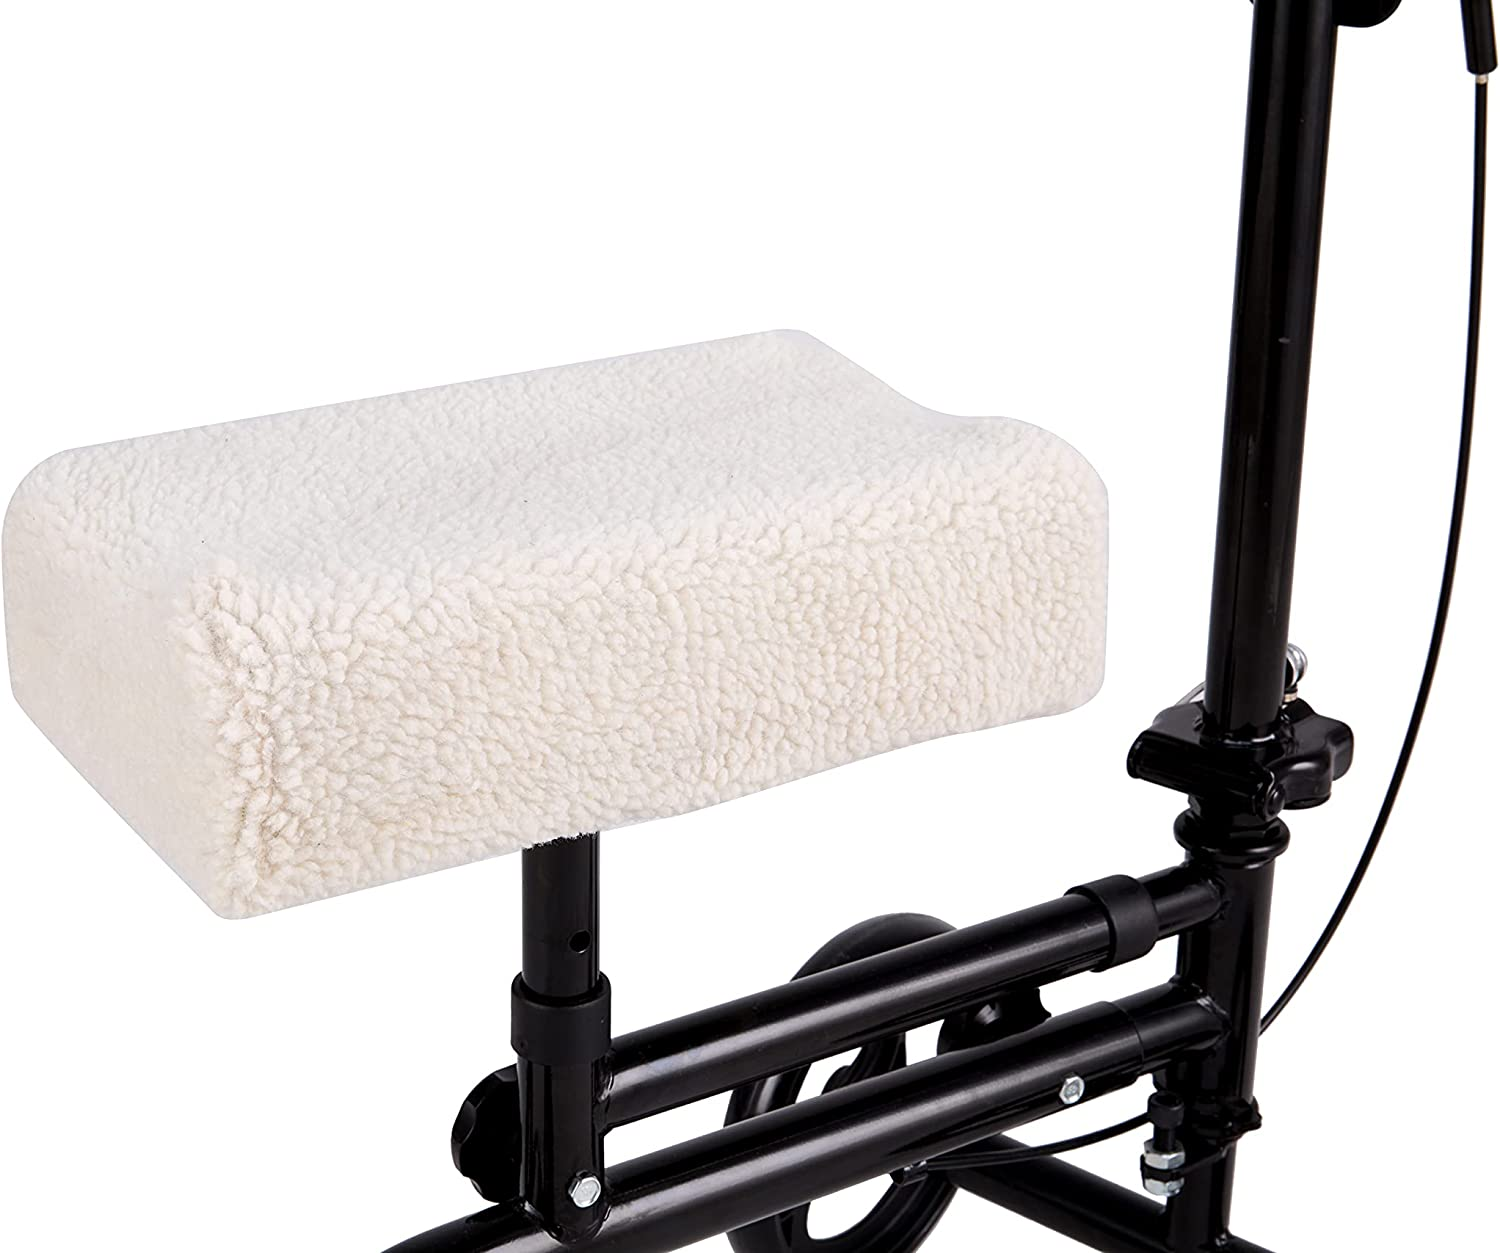 BlessReach Knee Walker Pad Cover Sheepskin - NEW before selling Manufacturer regenerated product Plush Cus Synthetic